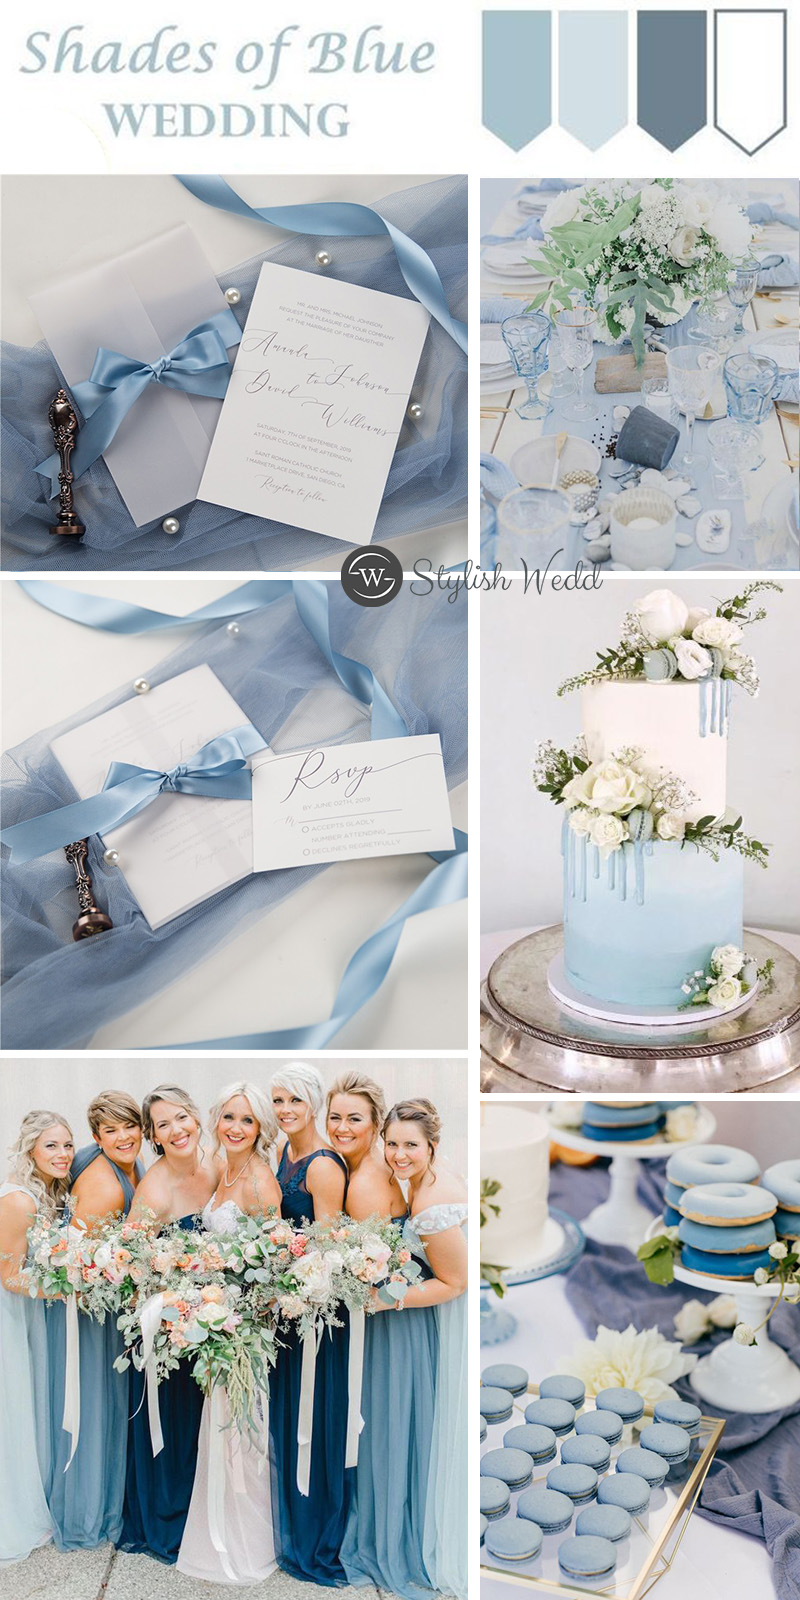 elegant caligraphy wedding invitations with vellum paper pocket and french blue silk ribbon